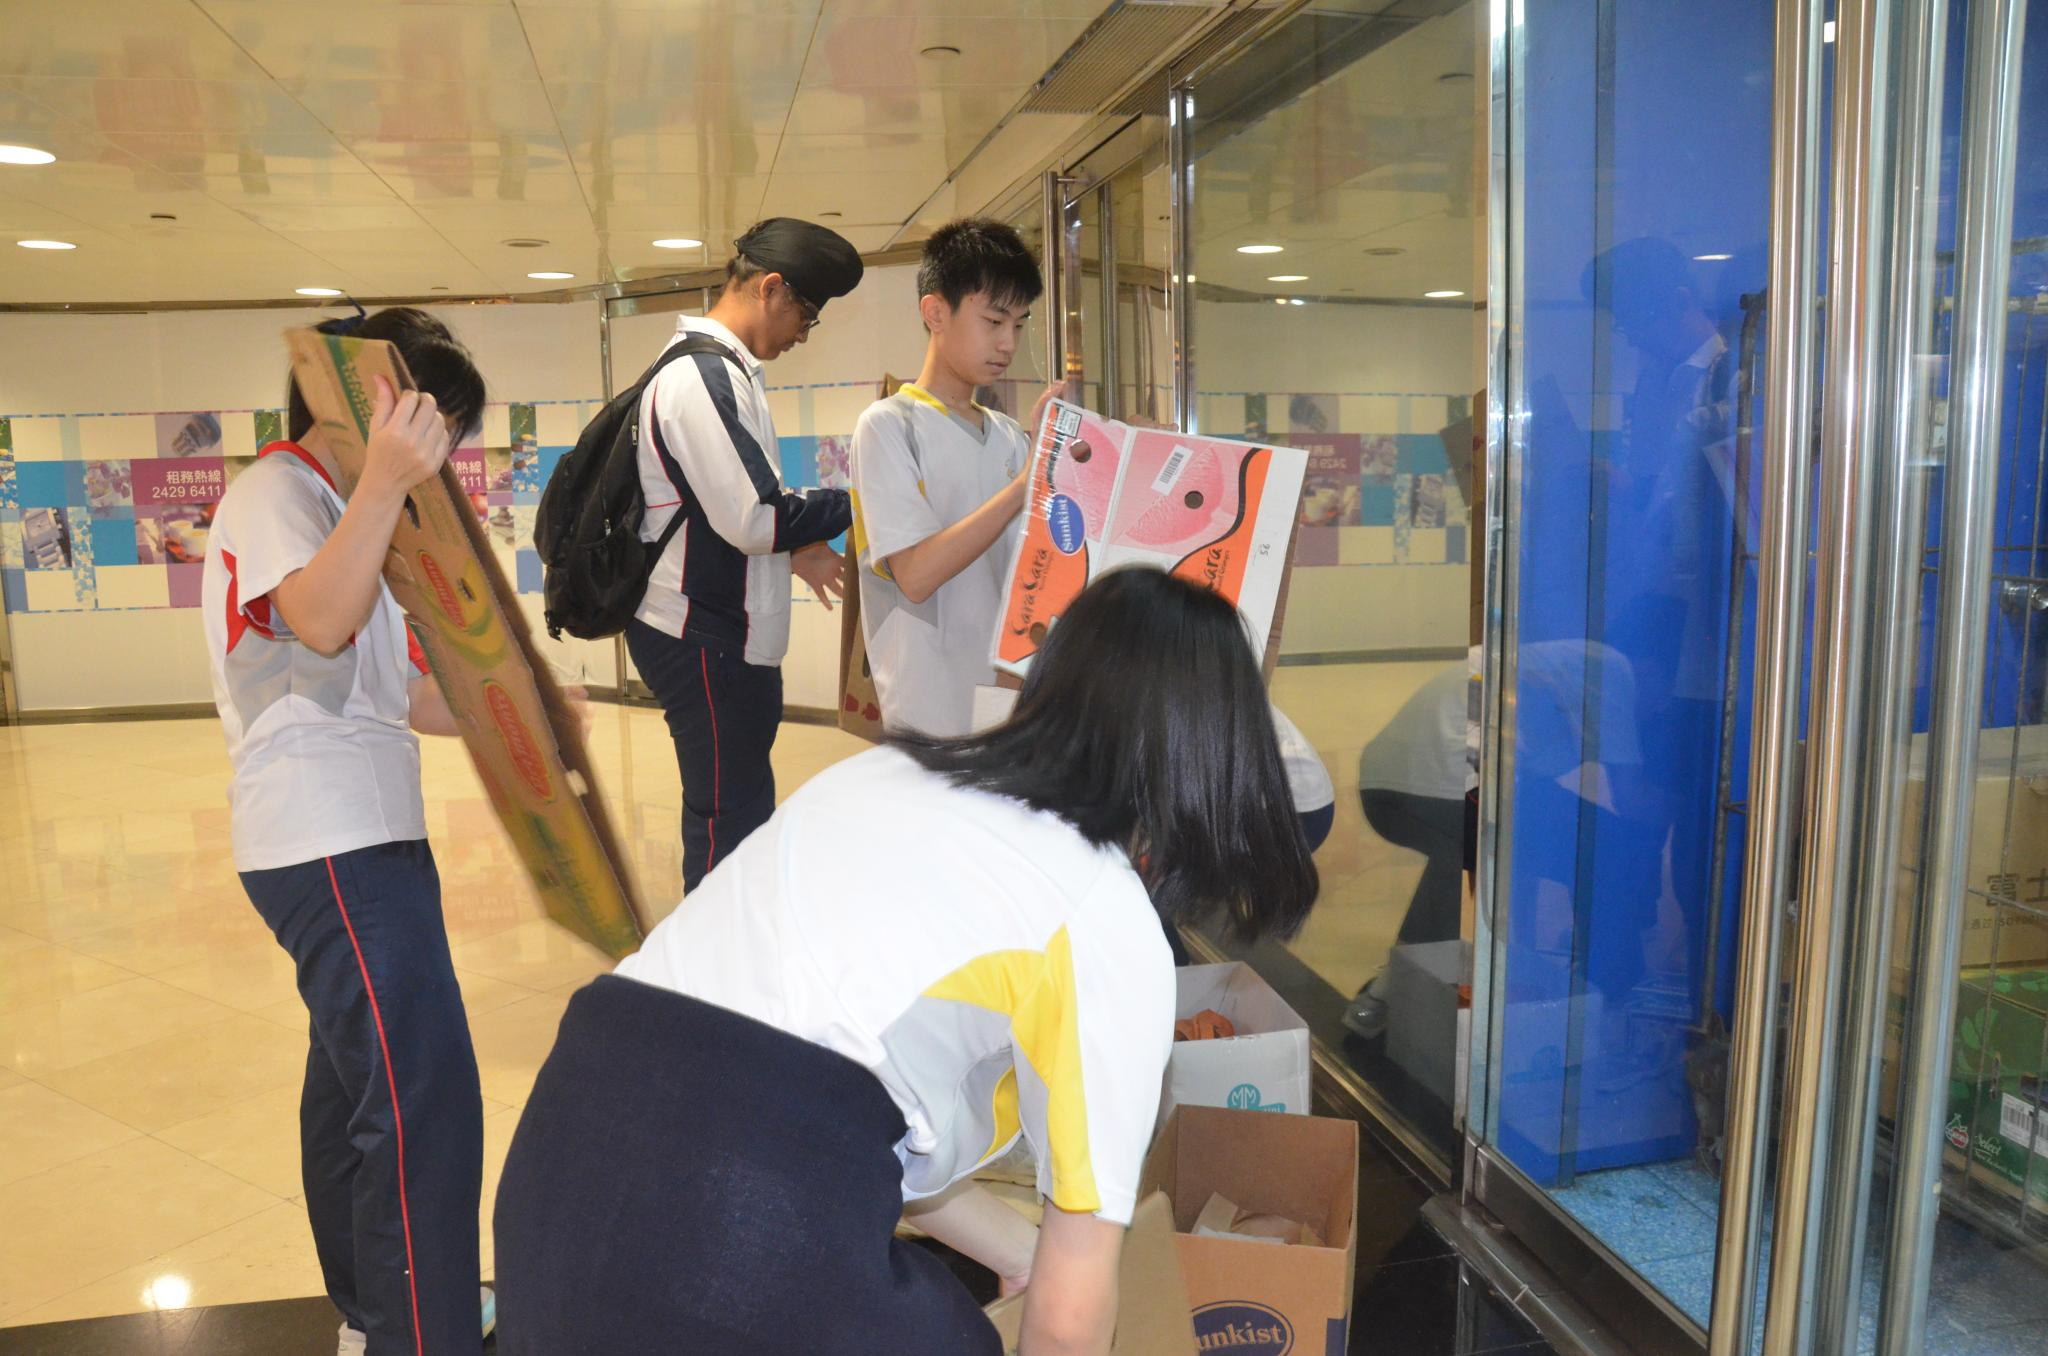 Students were picking the cardboard box and expecting to get enough money for their lunch.